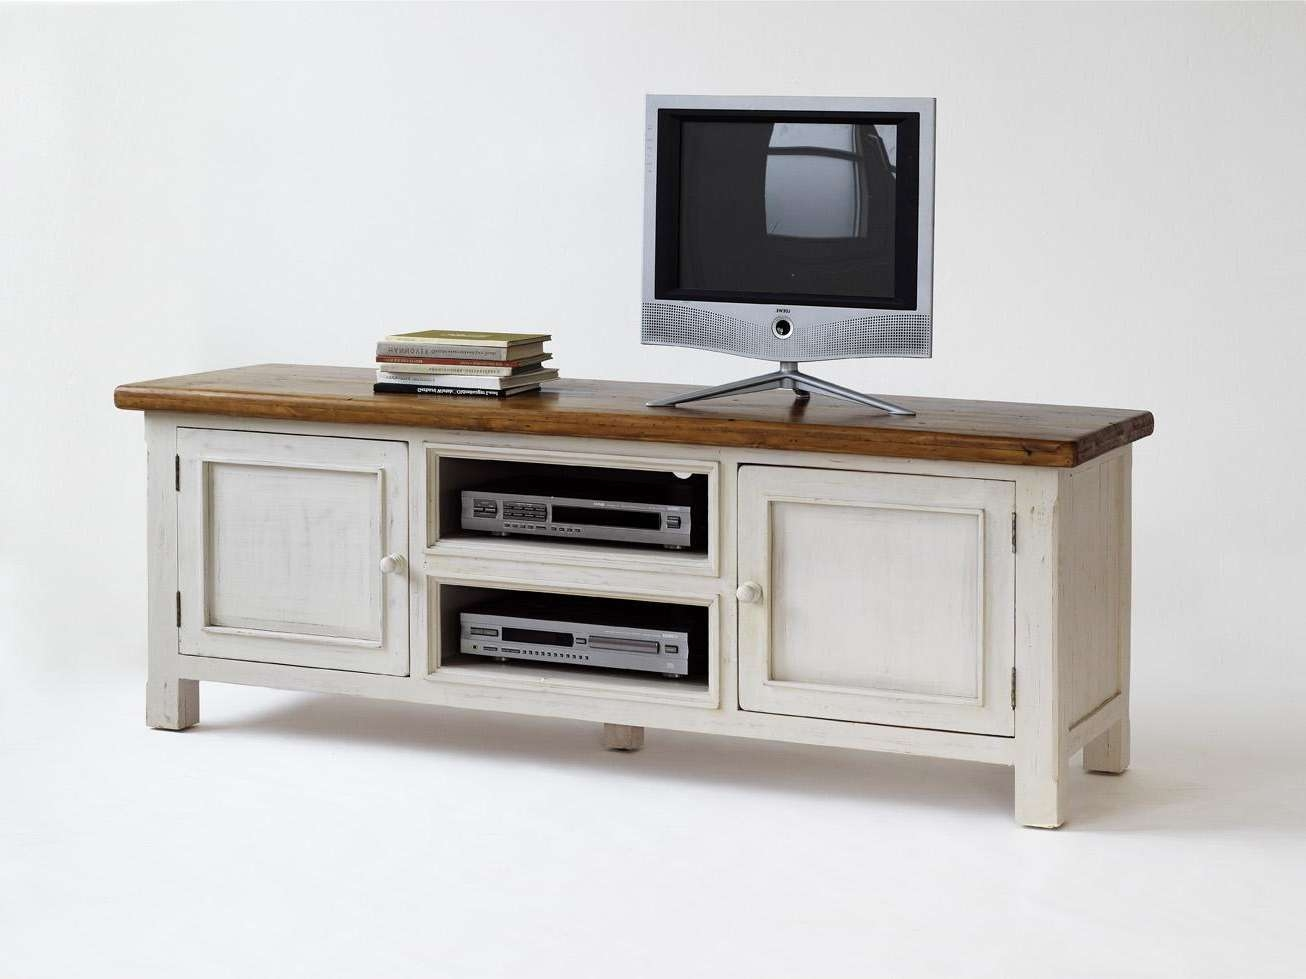 Incredible Decoration White Wood Furniture Nice Design Ideas Regarding White And Wood Tv Stands (View 5 of 15)